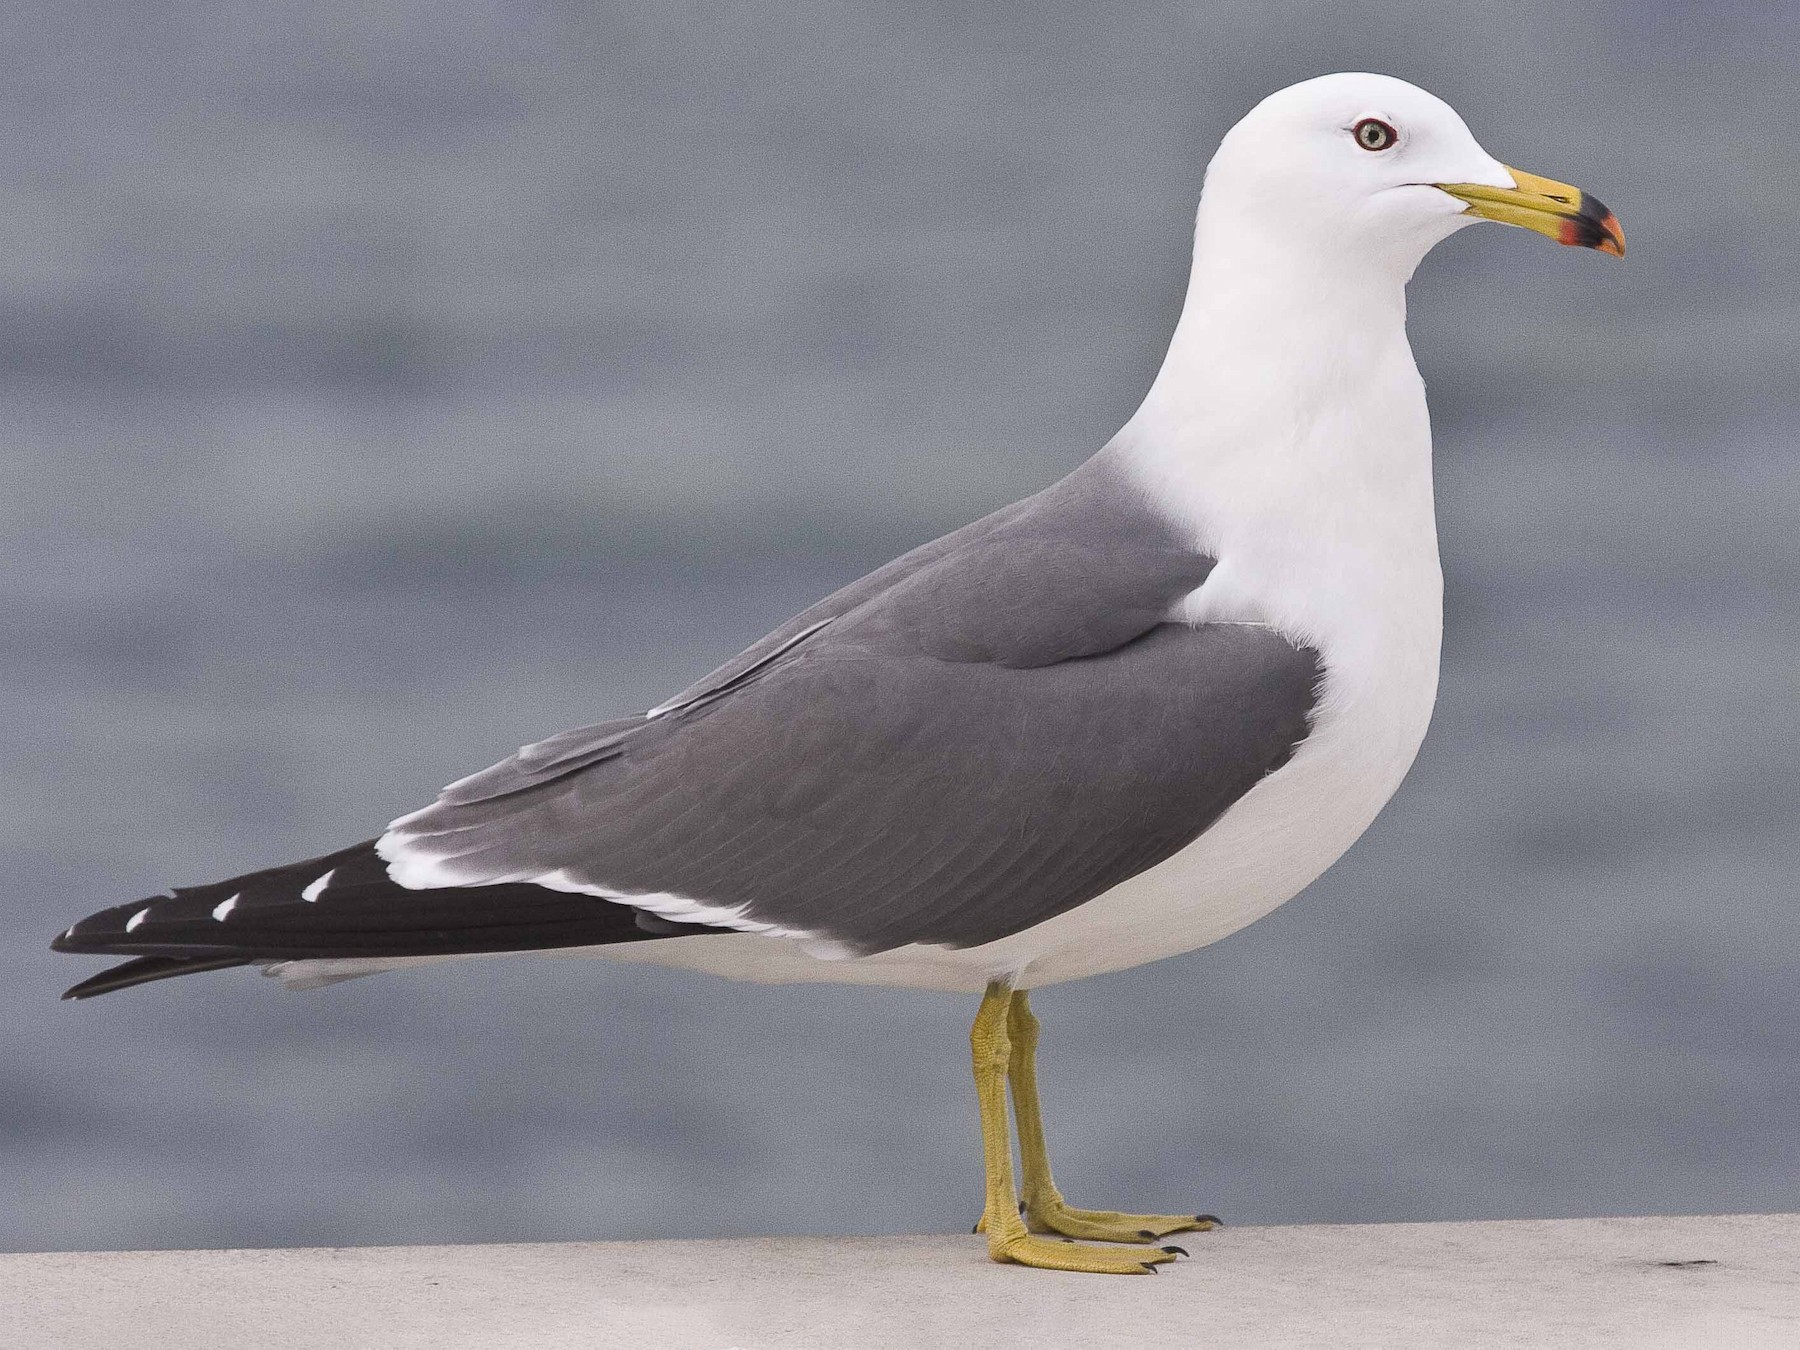 Black-tailed Gull - eBird